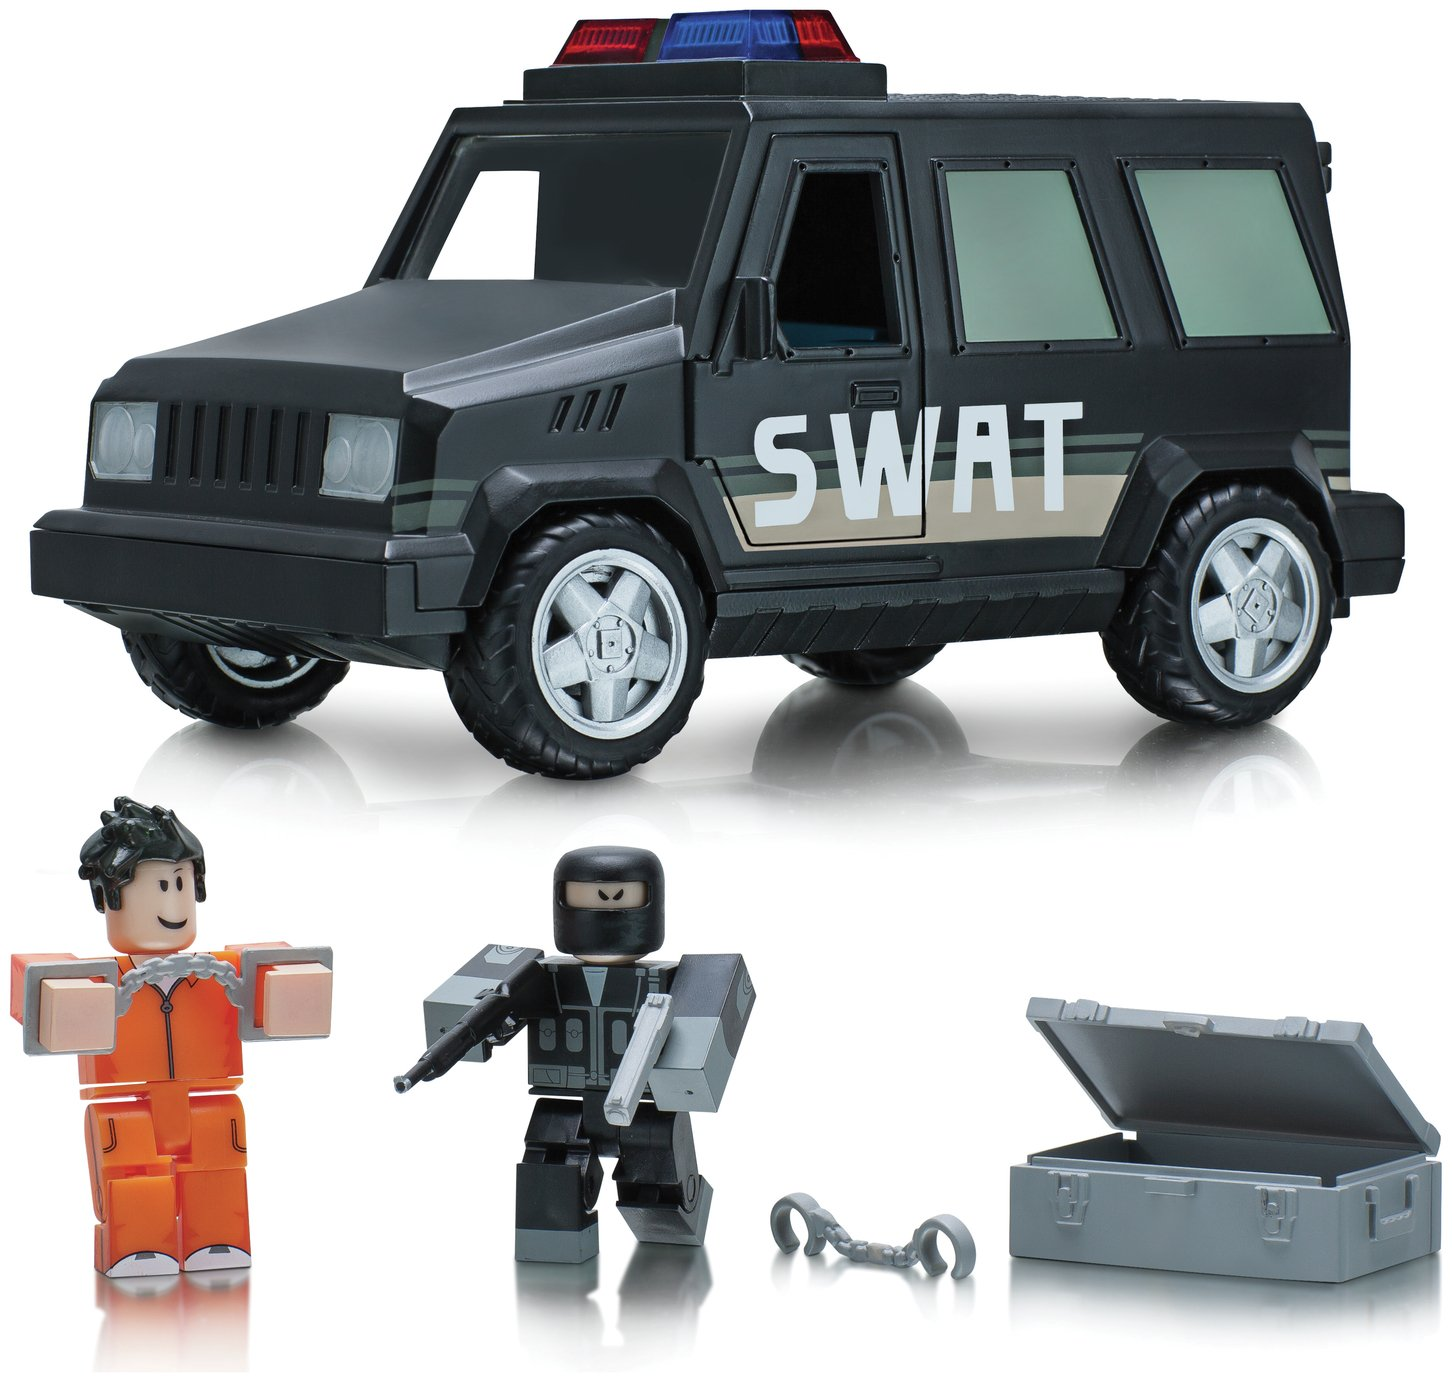 Roblox swat vehicle playset from roblox